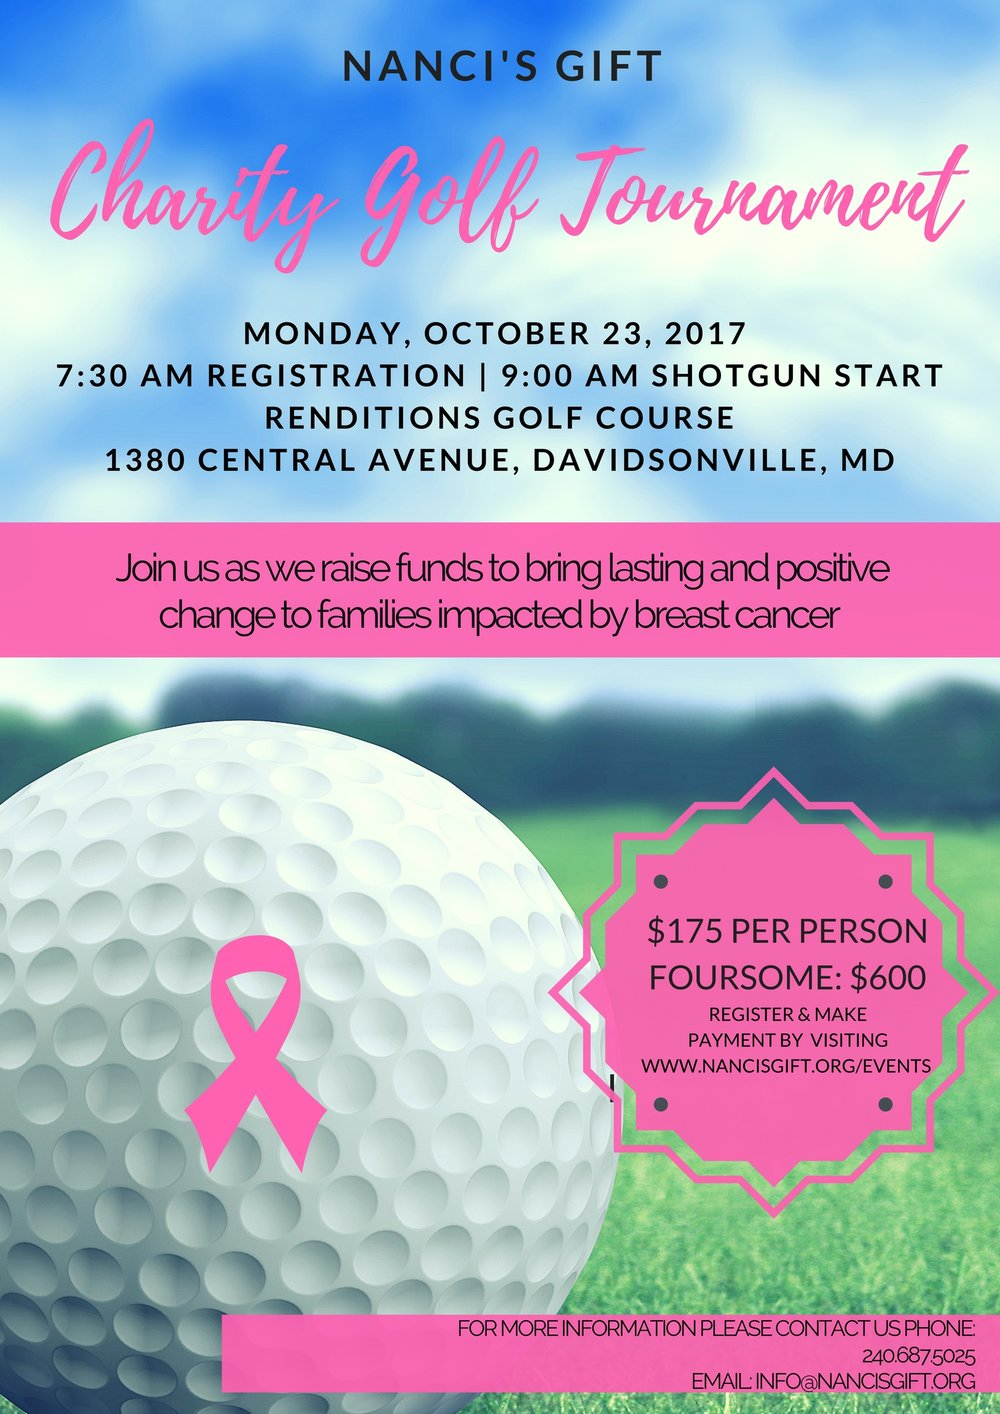 Registration includes 18 holes of golf, golf cart, green fees, welcome bag, lunch, and dinner. Special thanks to Greene Turtle, Pusser's Caribbean Restaurant, and Buck Distributing!